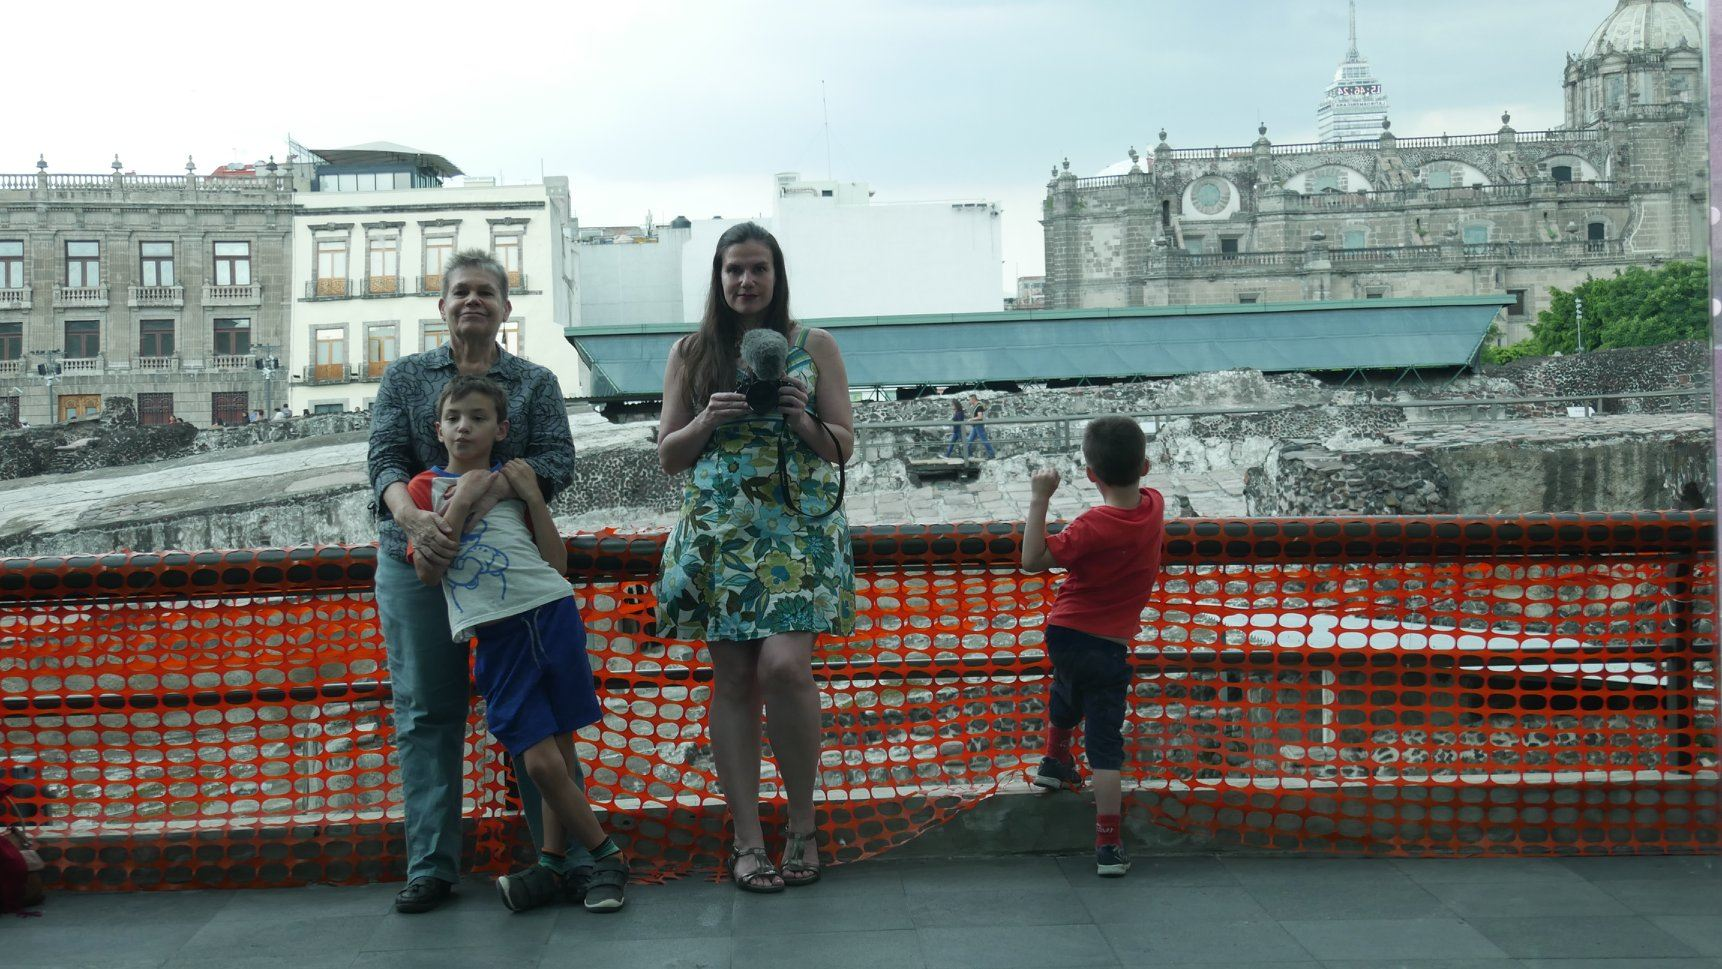 Alex, her two sons and her mother wear summery clothes as they pose for a photo on a bridge in a city.